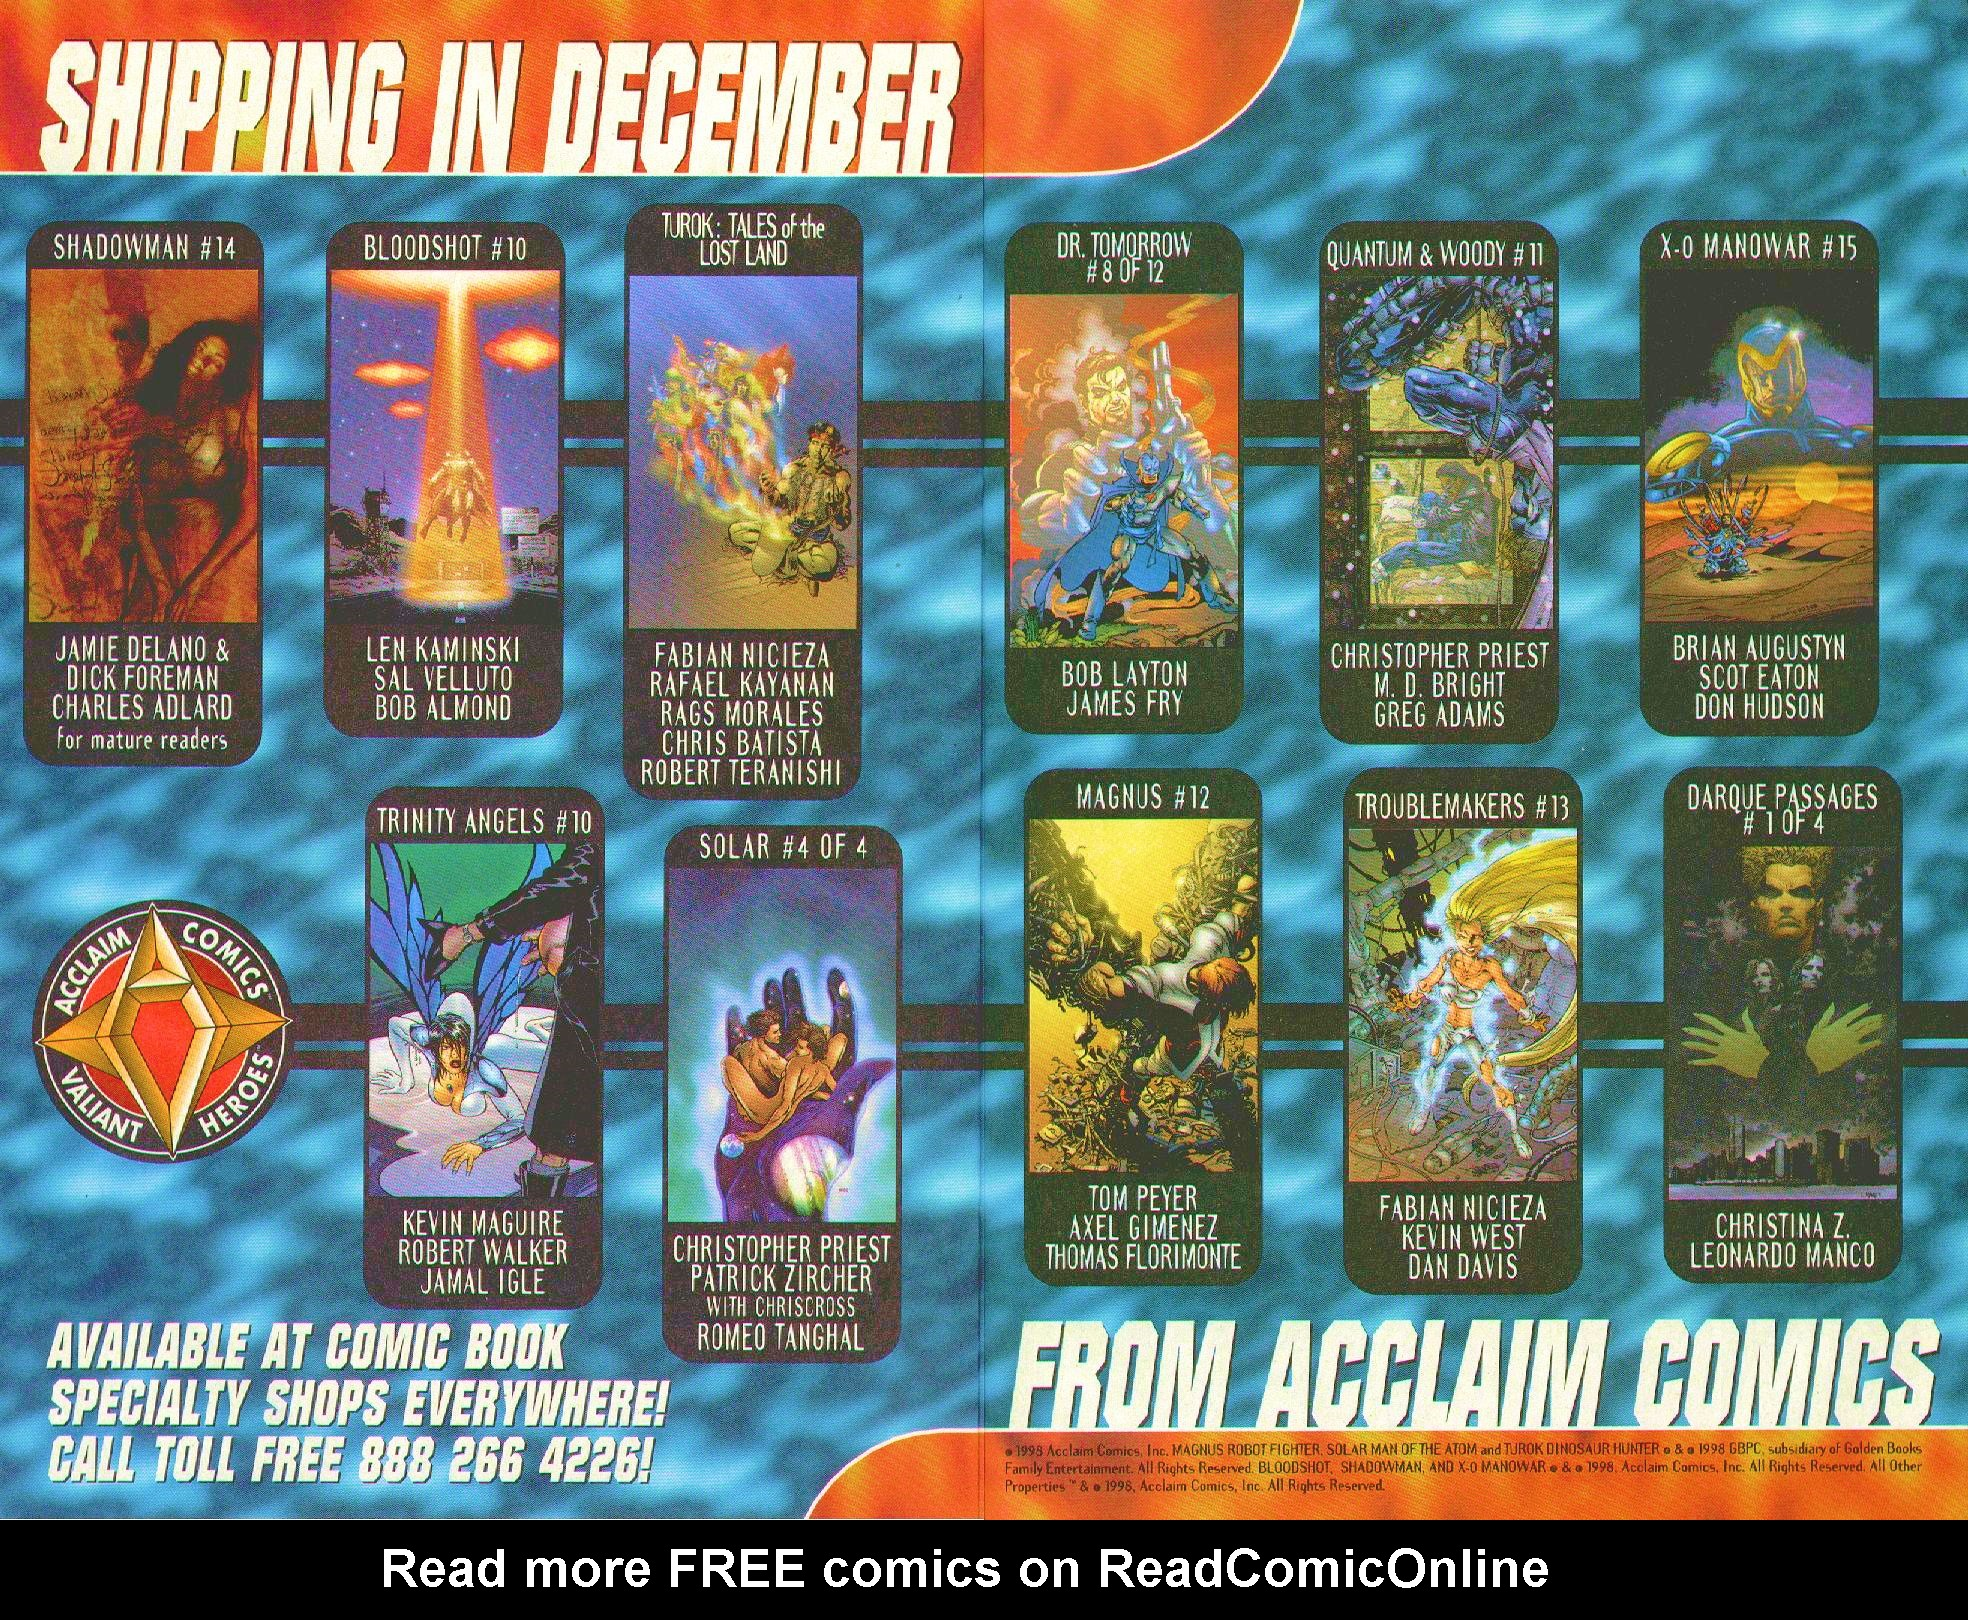 Read online Trinity Angels comic -  Issue #10 - 7